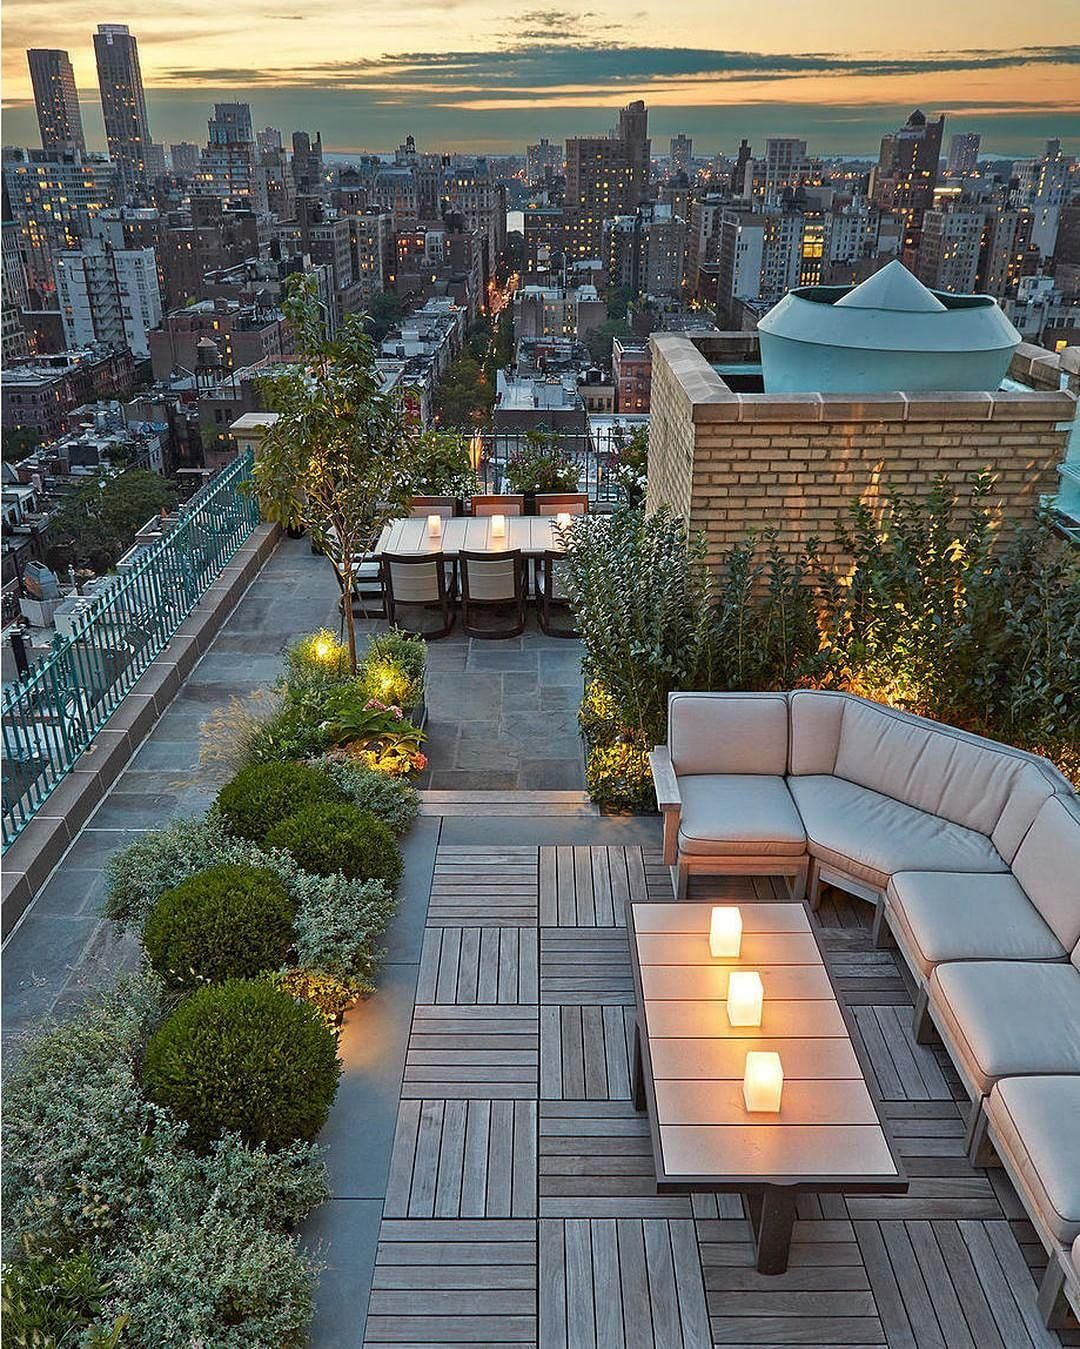 Central Park West Rooftop In Newyork City Tag A Friend To Bring Here Themillionairelife By Hollander Rooftop Design Rooftop Patio Rooftop Garden